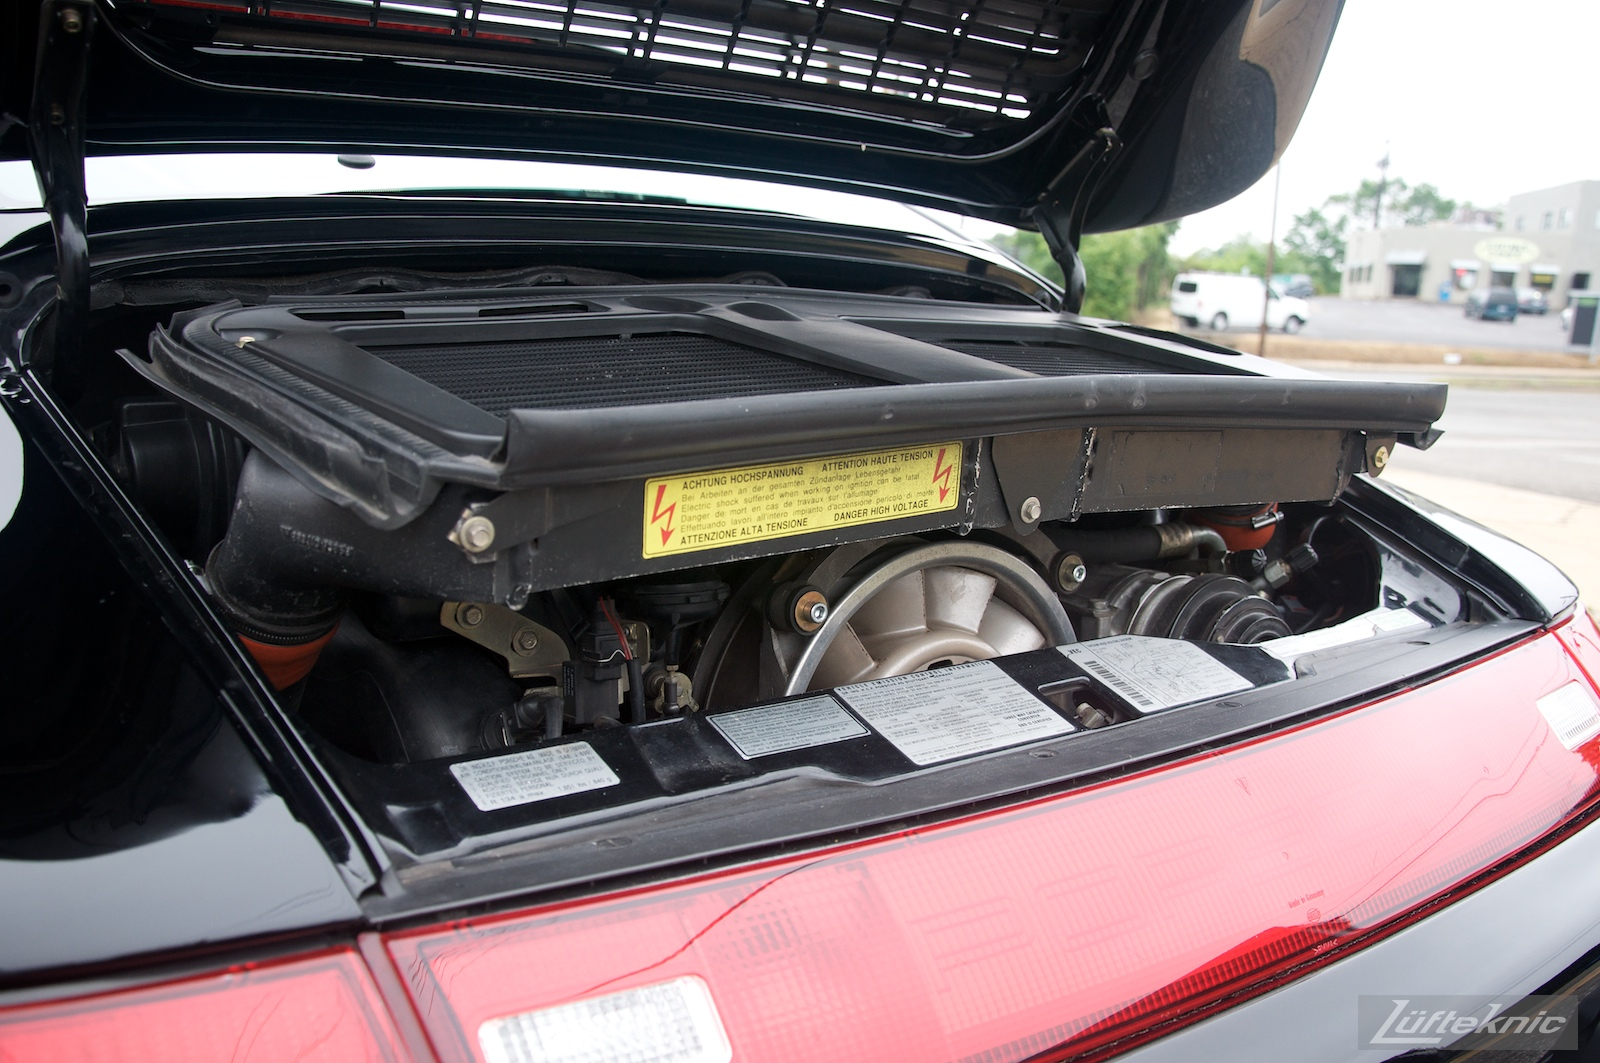 A 993 Turbo with the decklid open showing the large intercoolers.